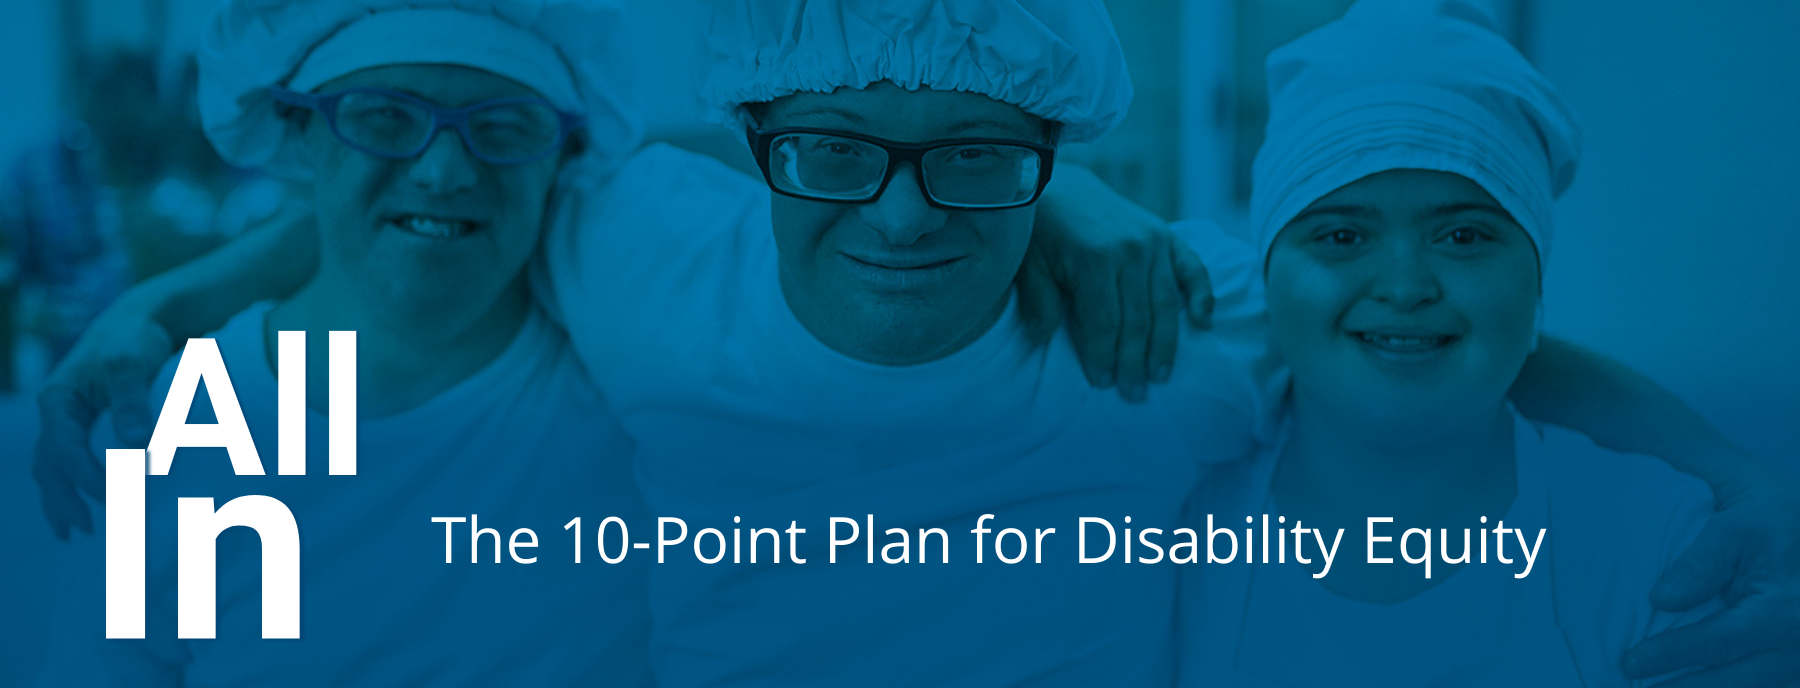 All In: The 10 Point Plan for Disability Equity Corrected